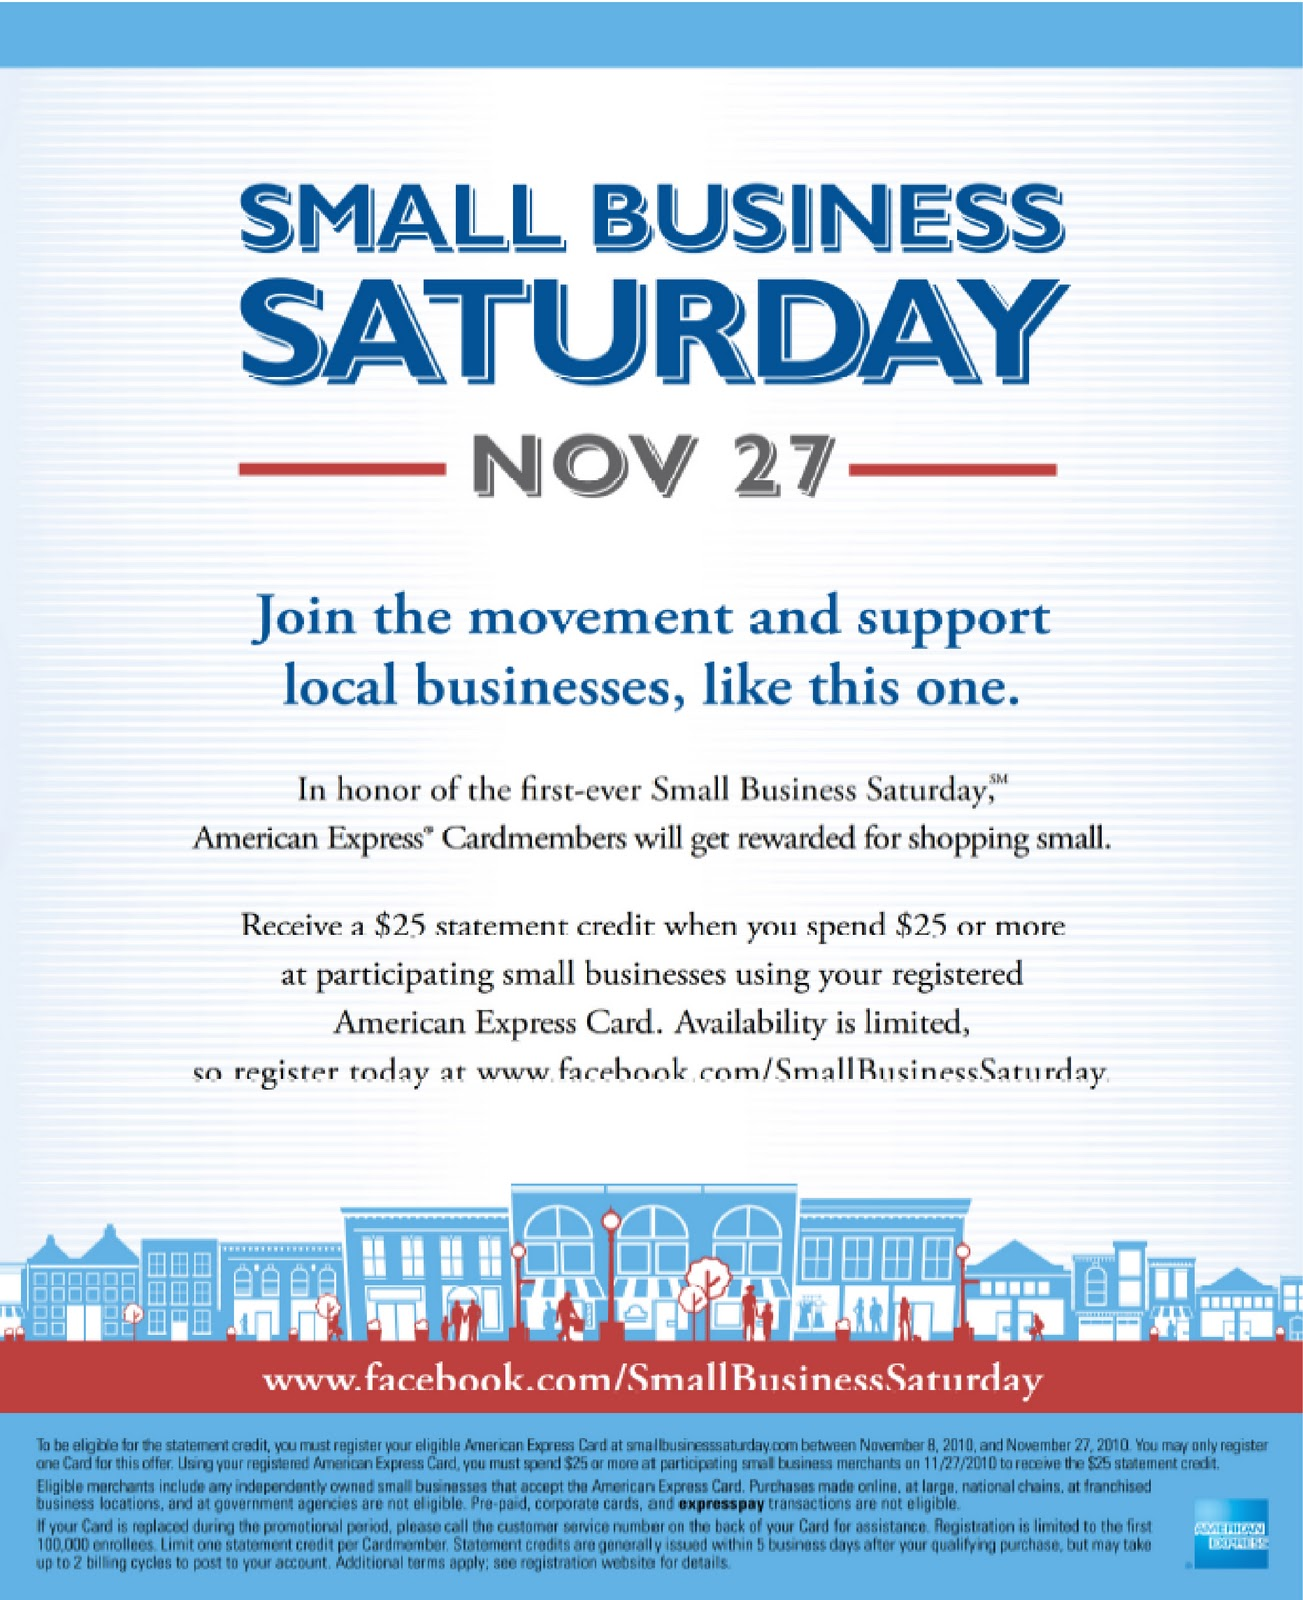 Divine Consign: SMALL BUSINESS SATURDAY